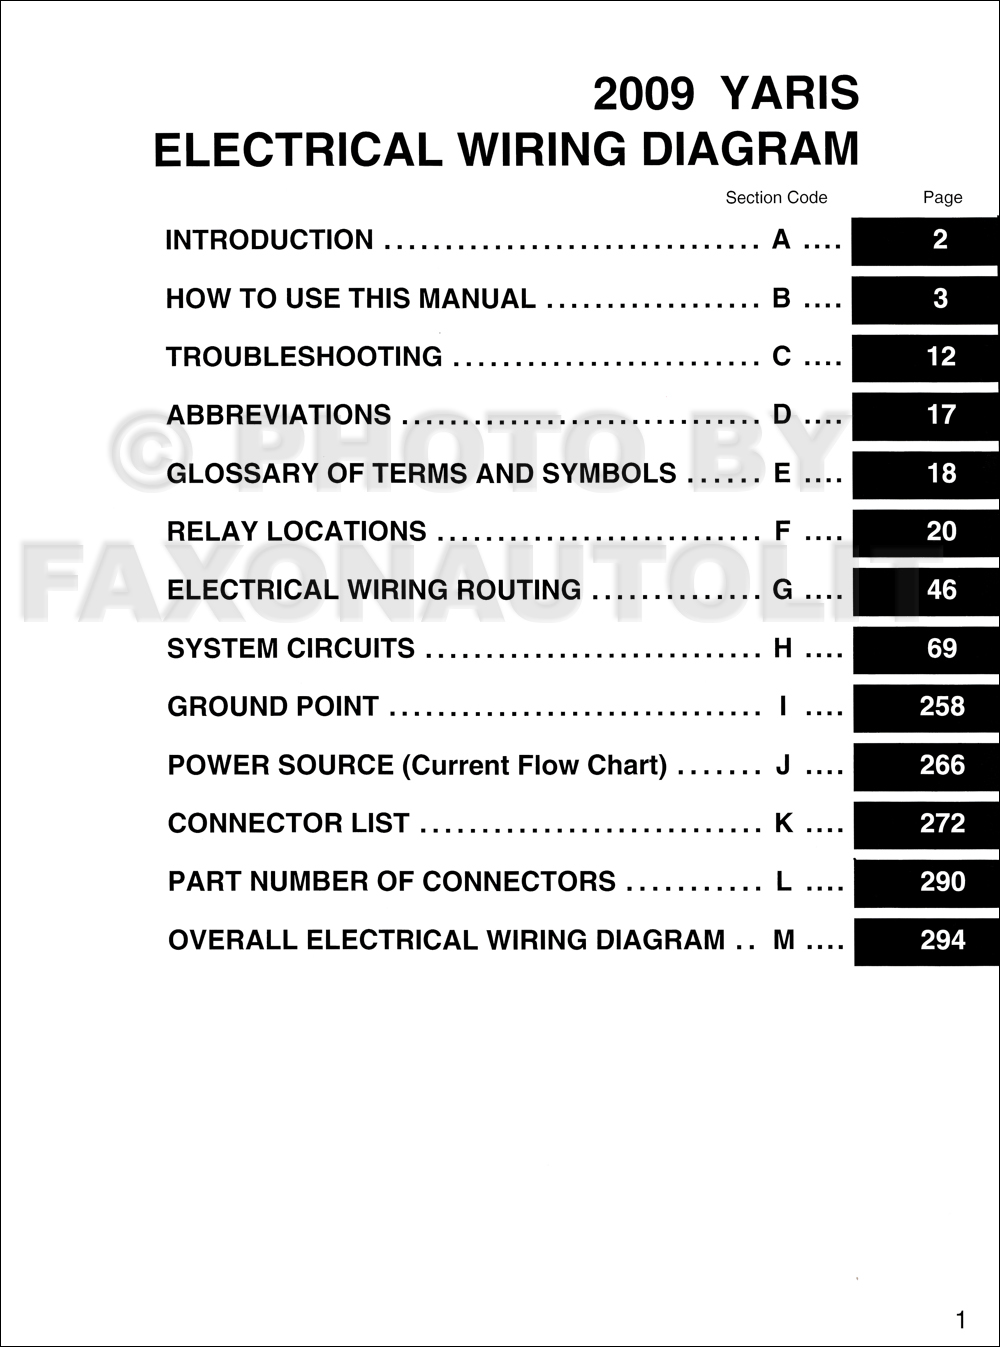 2008 toyota yaris radio wiring diagram 2008 image toyota yaris 2008 radio wiring diagram wiring diagram and hernes on 2008 toyota yaris radio wiring